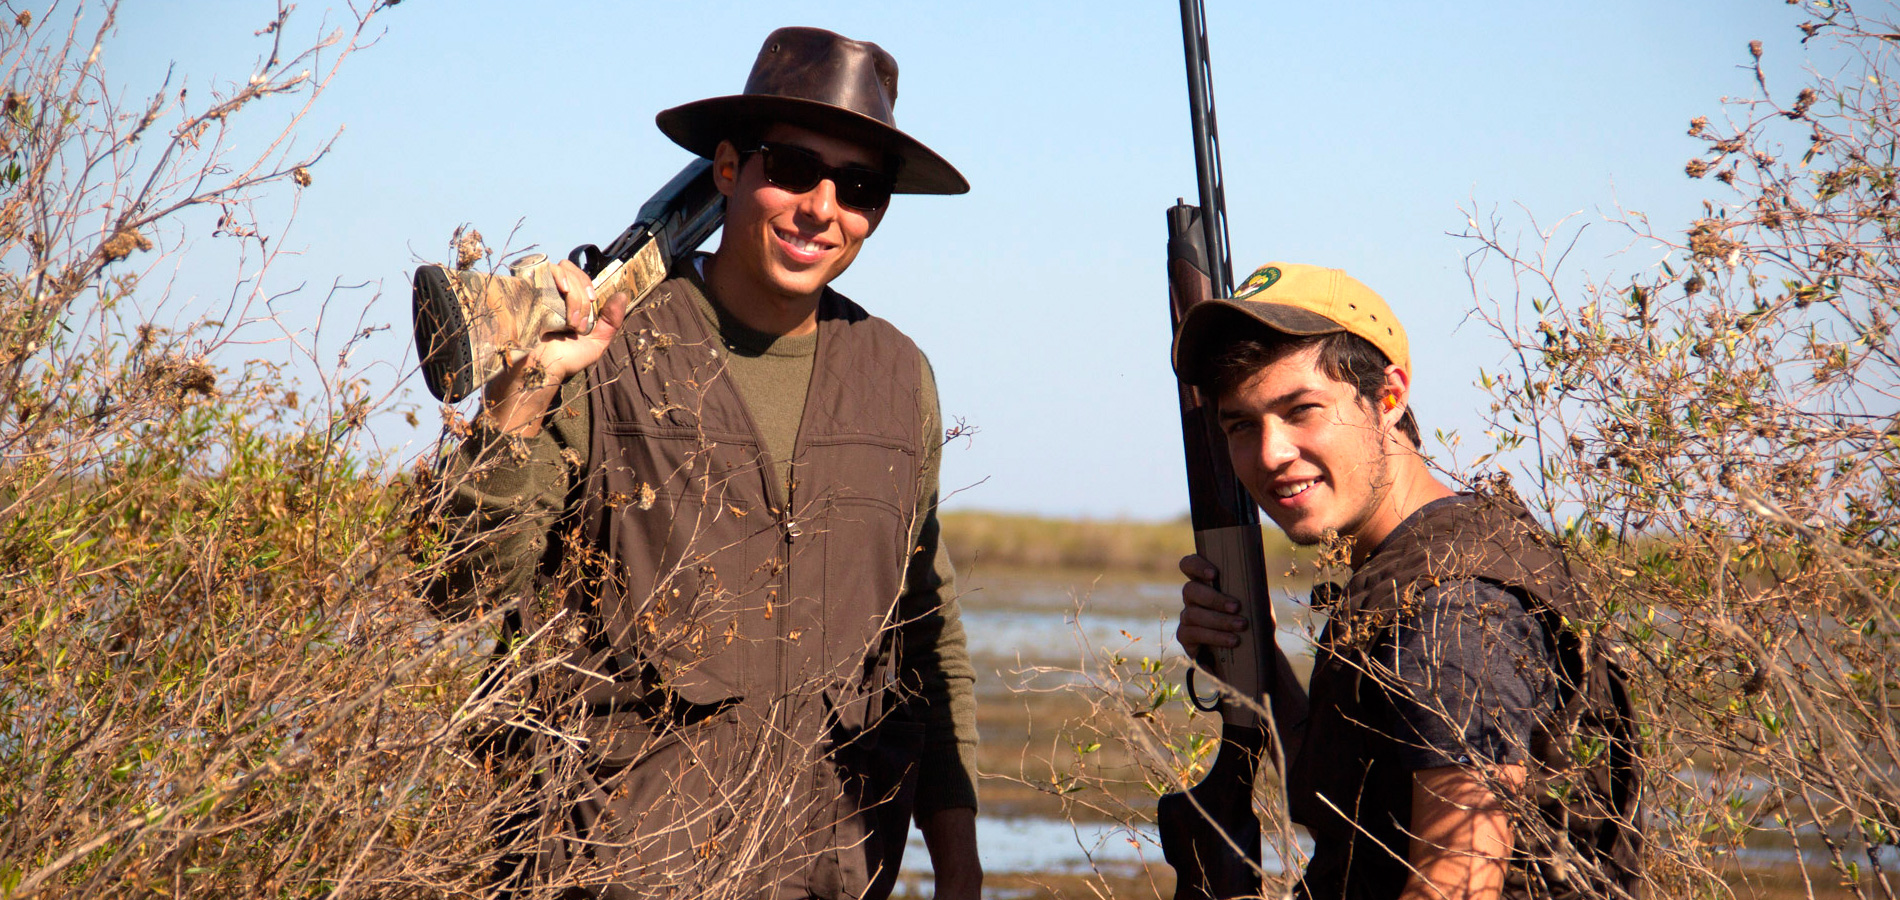 Wingshooting & Hunting since 1994 by Paco Riestra